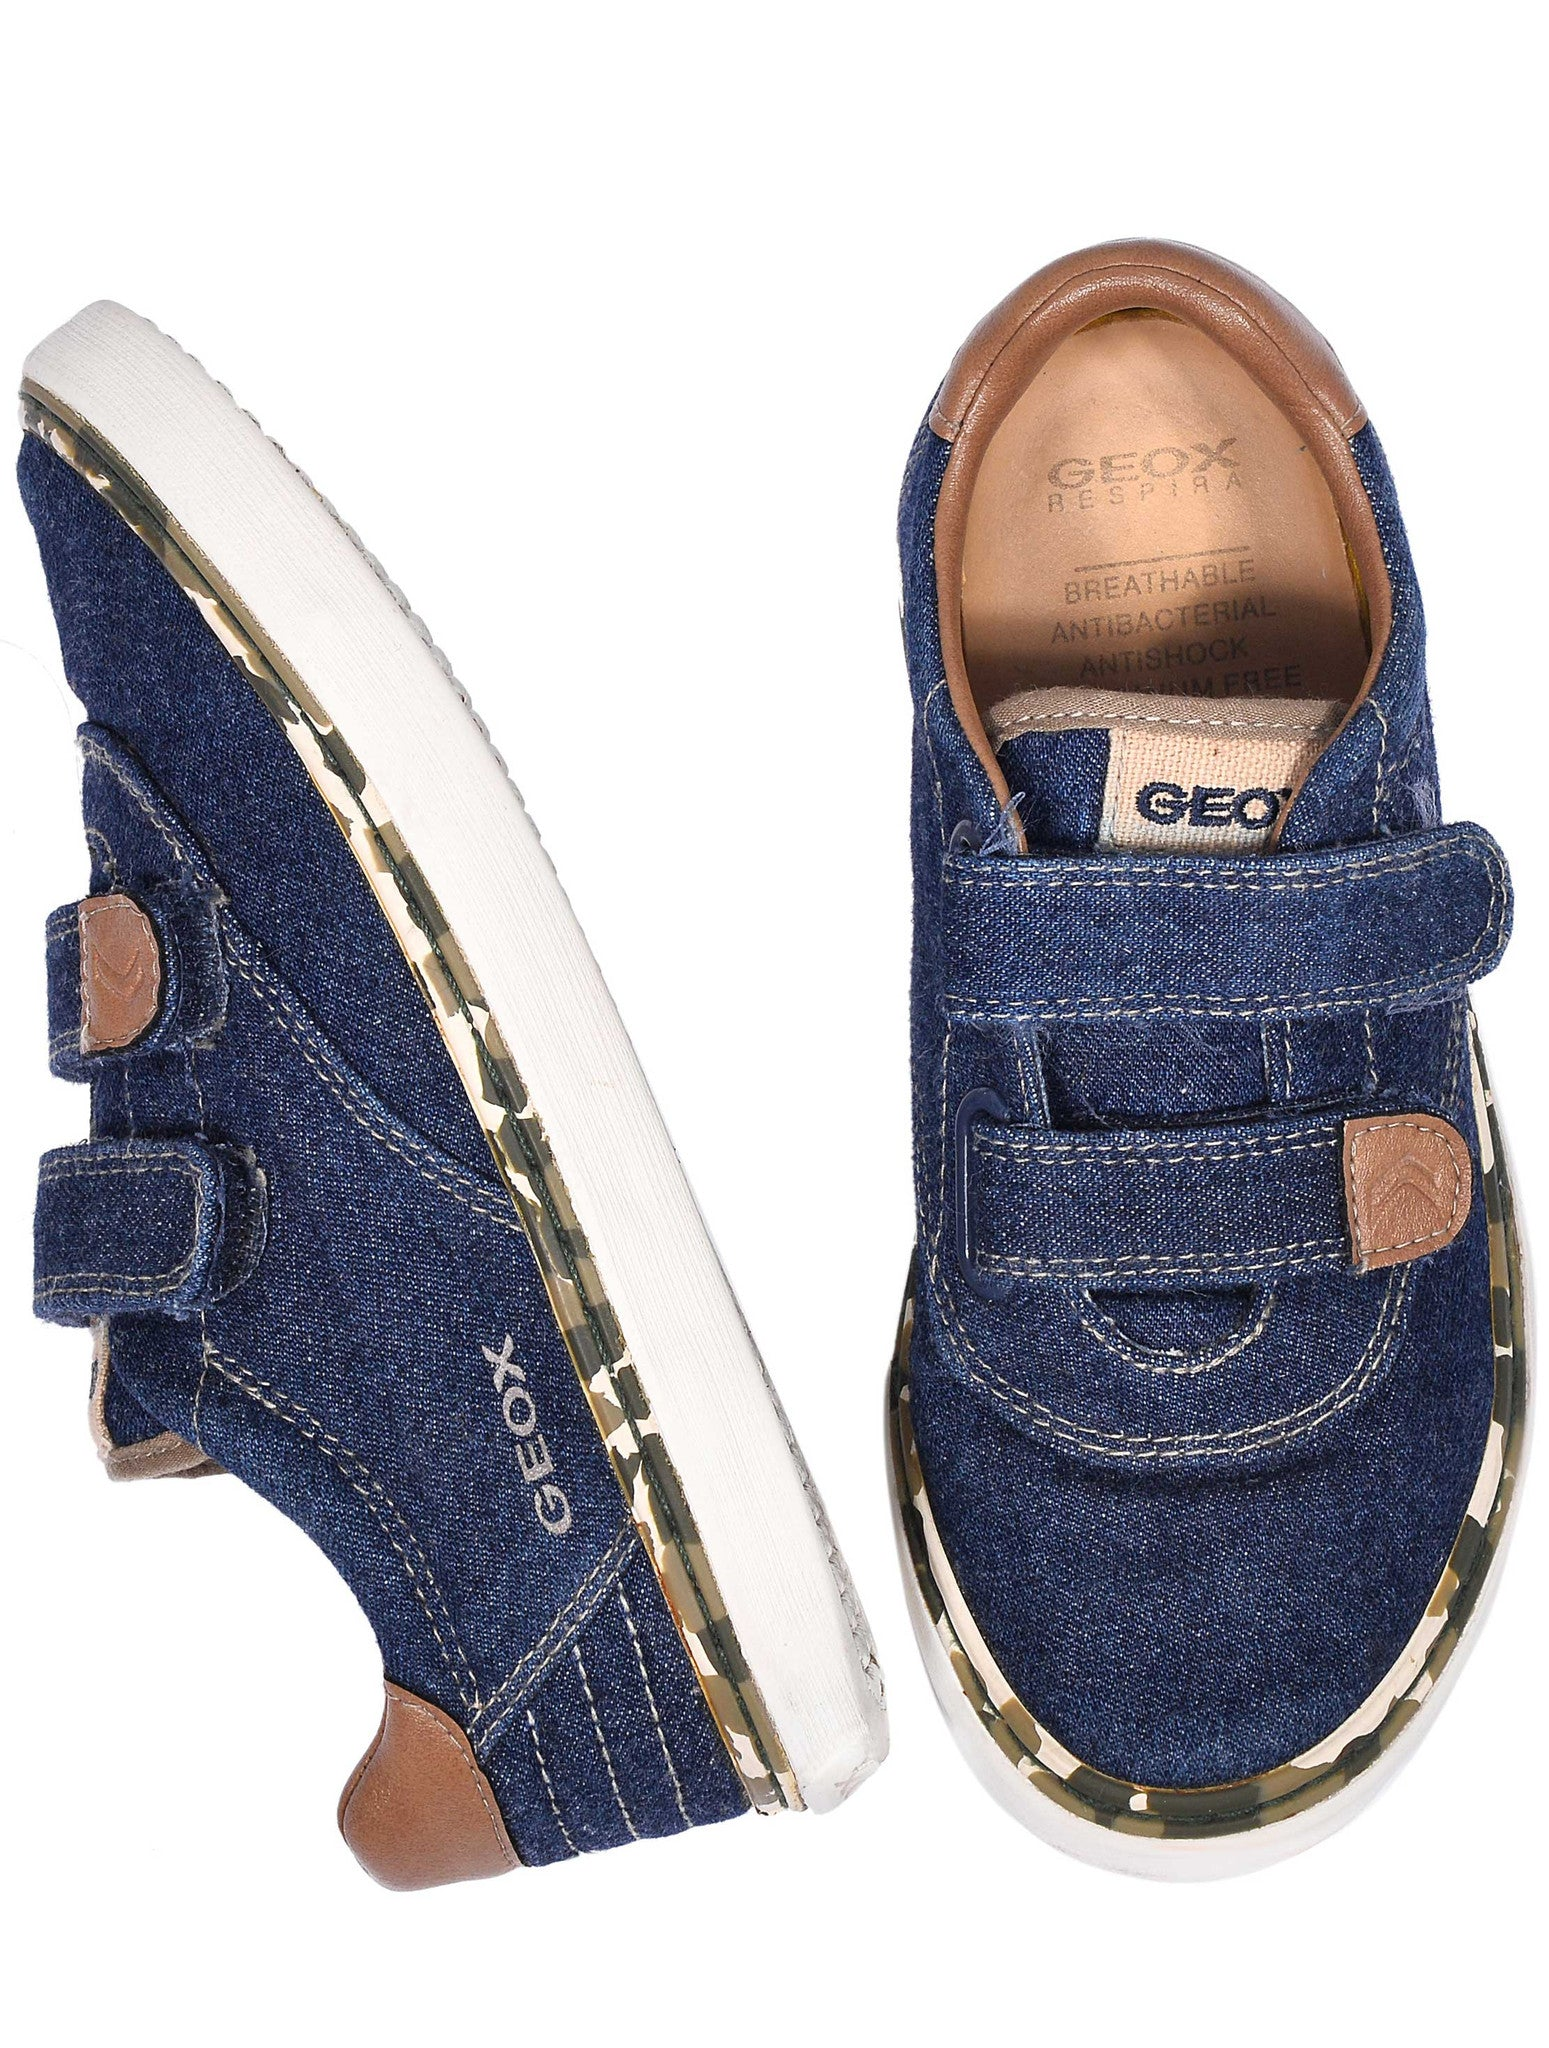 2 STRAP DENIM  SHOES - kidsstyleforless